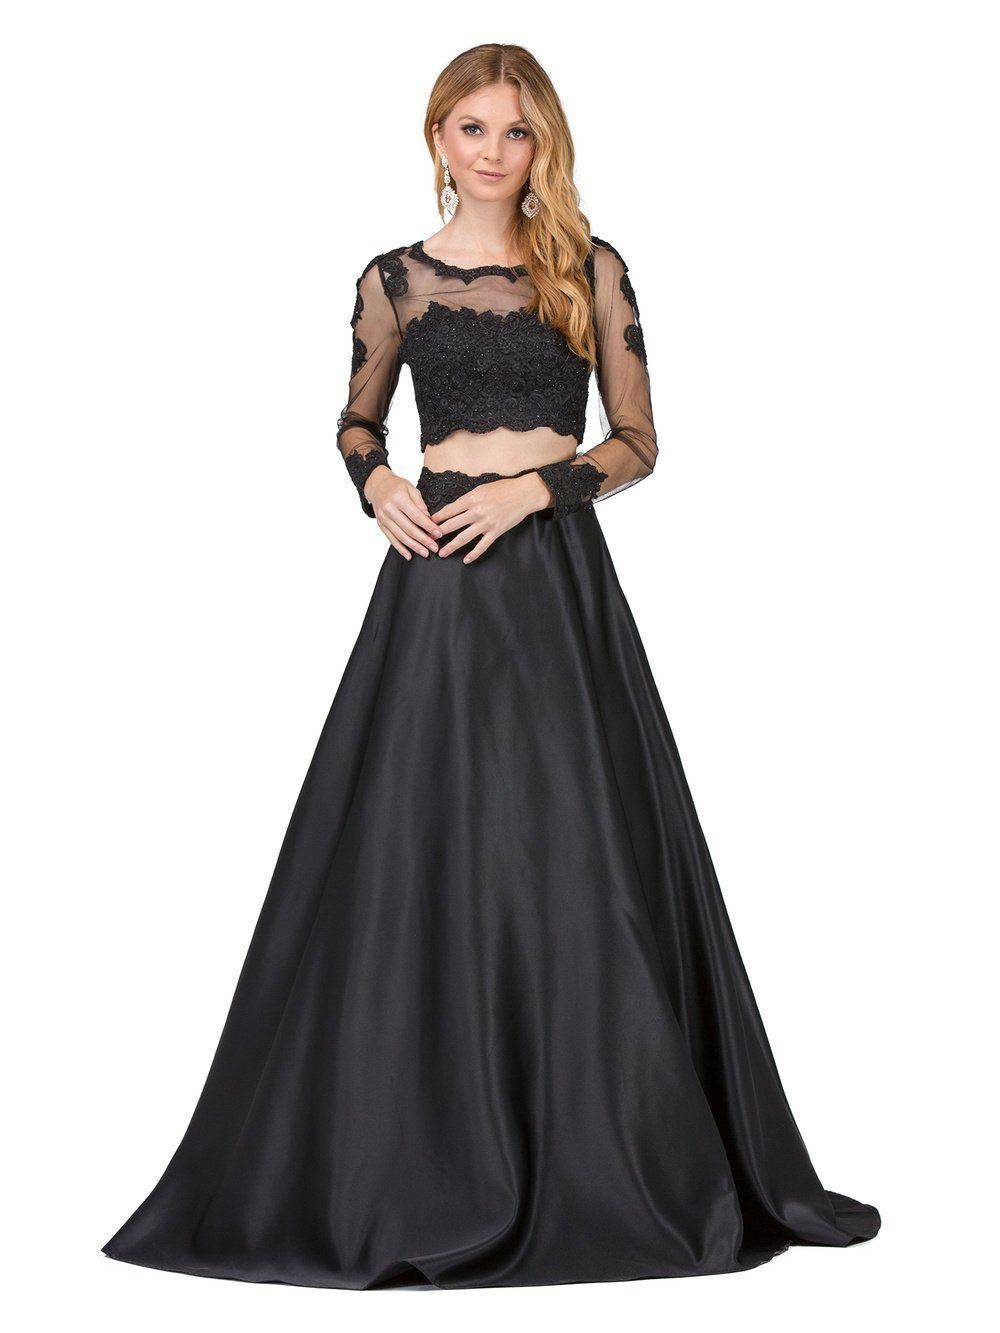 piece long sleeve prom dress dq fashion pinterest prom